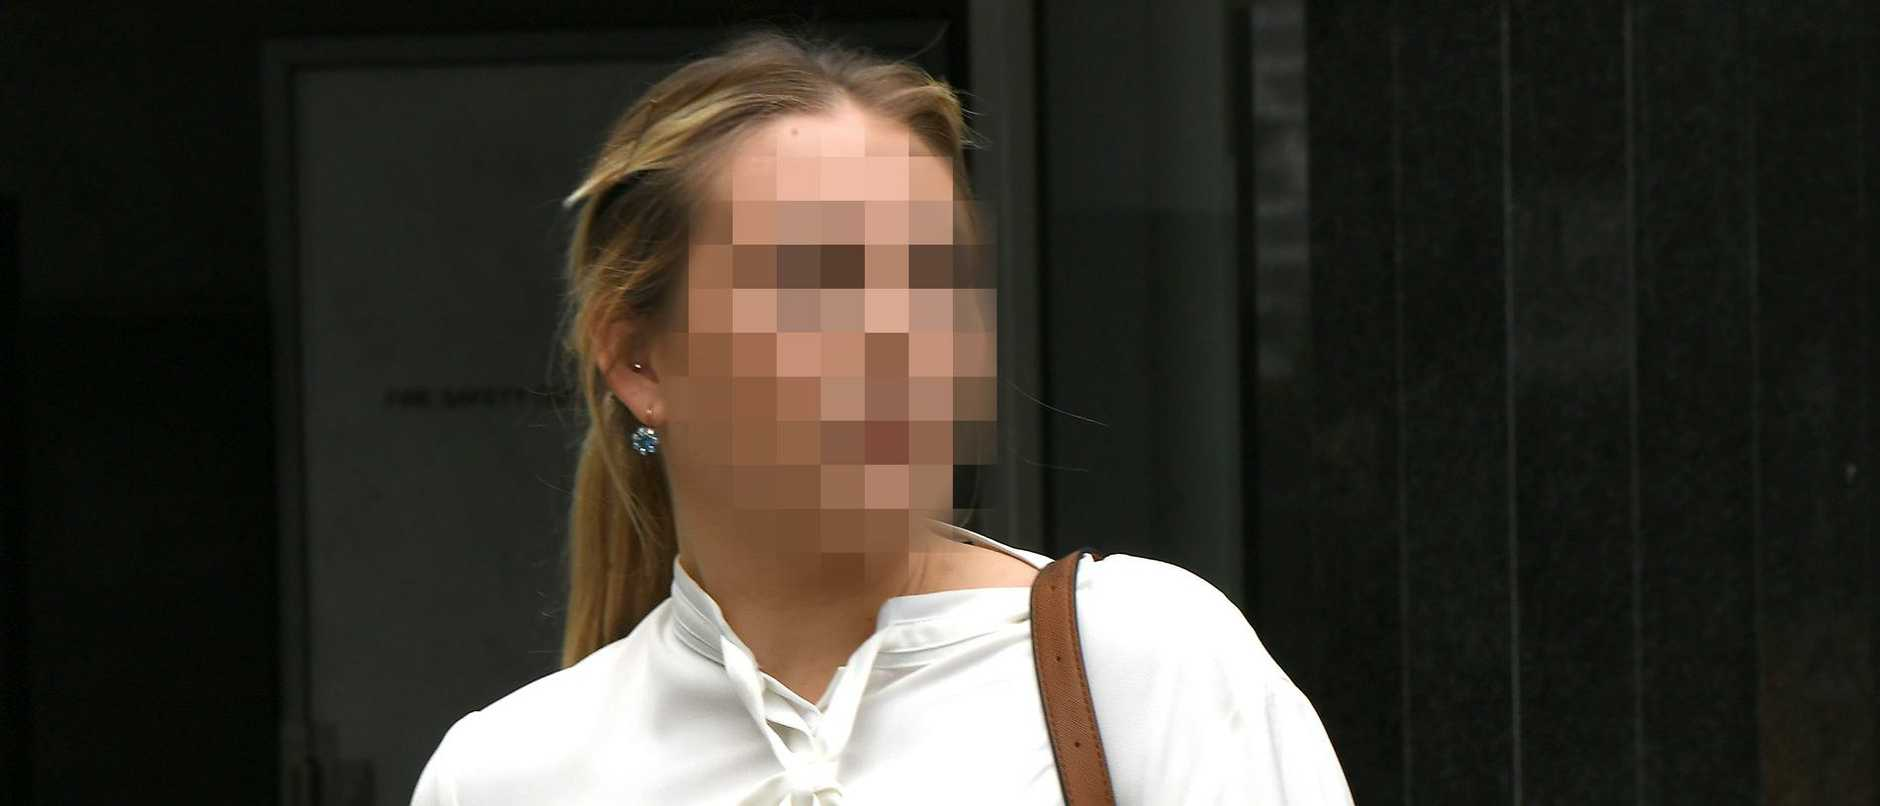 About 25 five people appeared in court today, charged with prostitution-related offences.